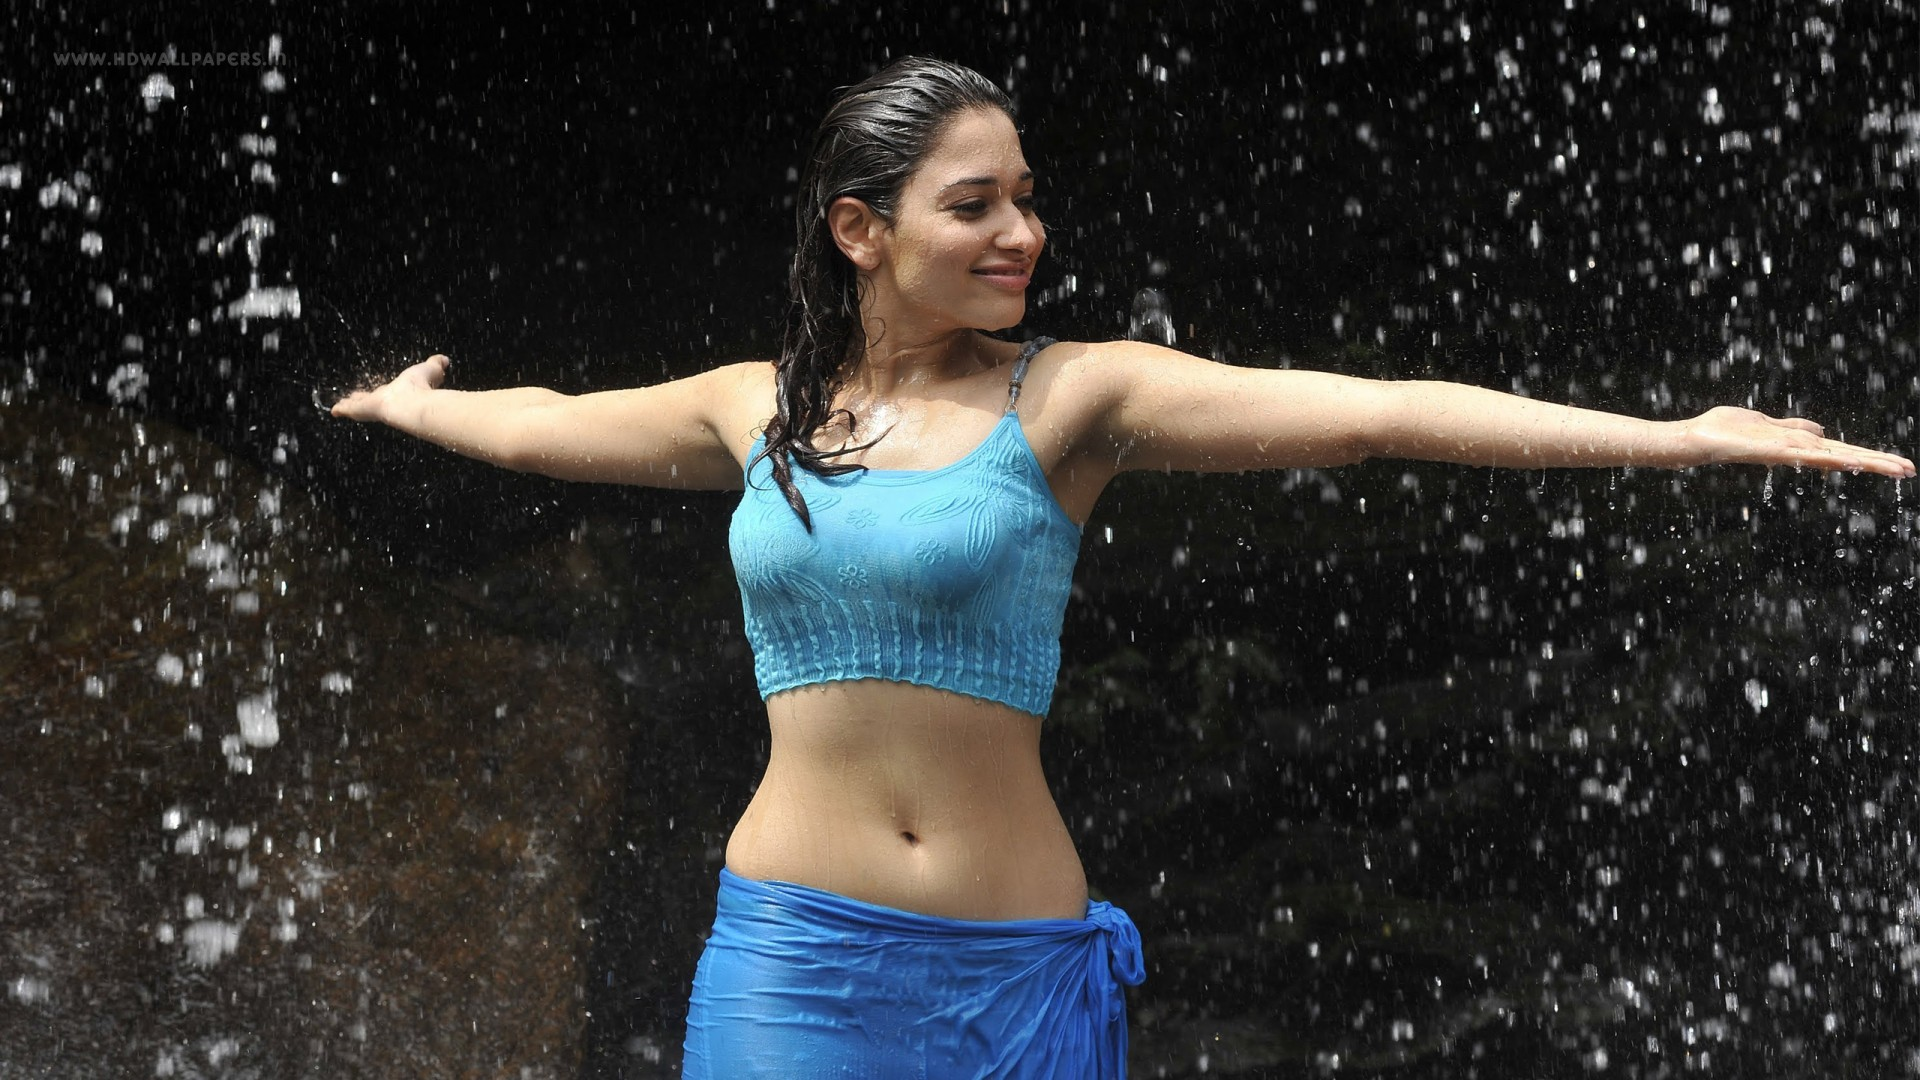 Tamannaah Bhatia Hot Rainy Still Wallpaper